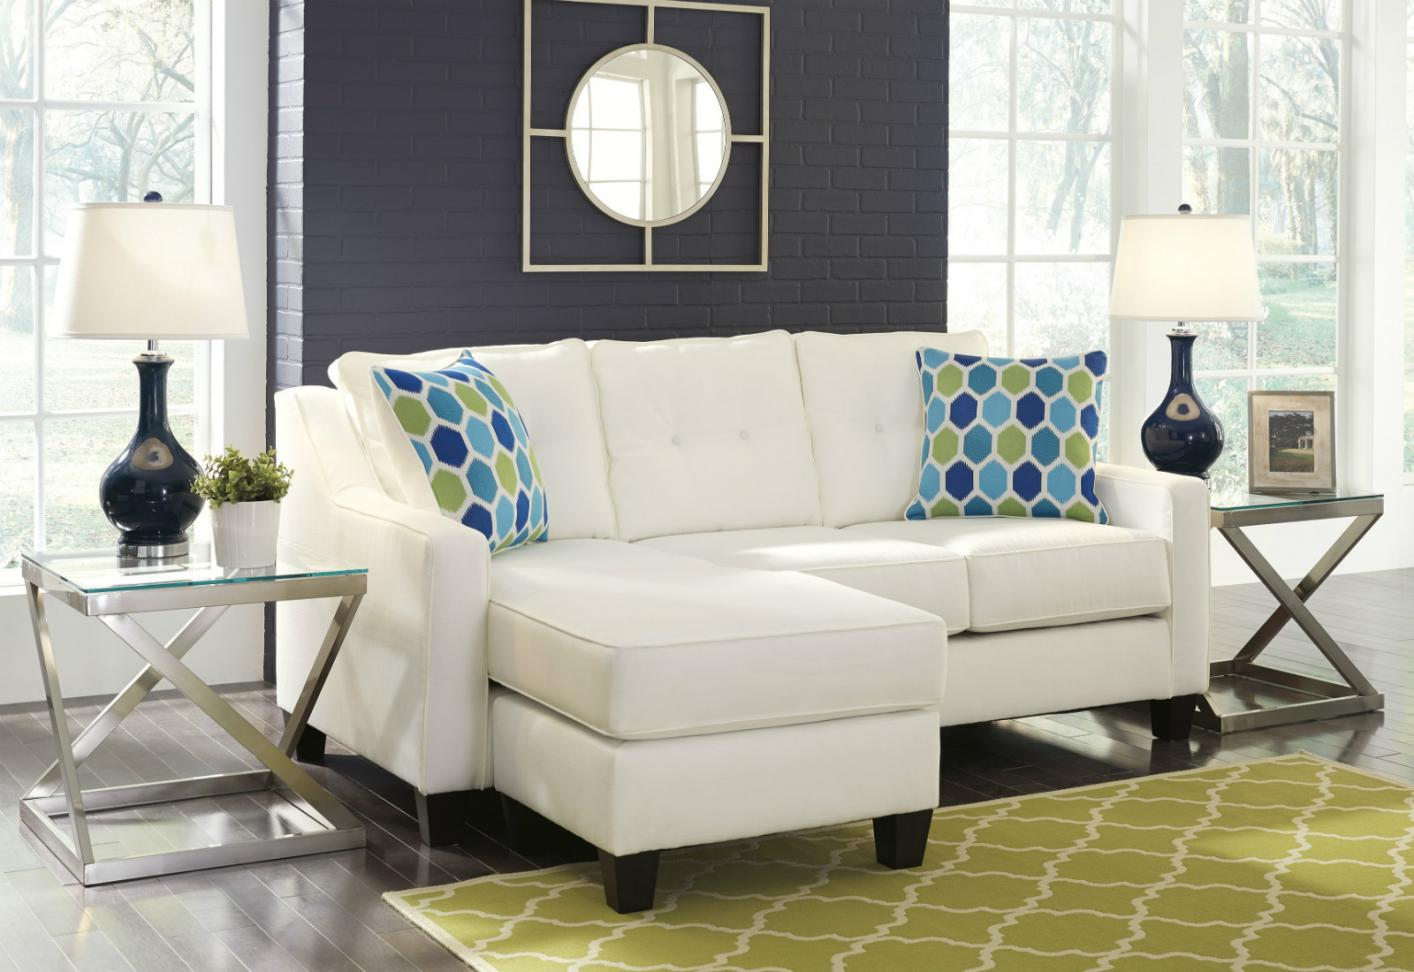 Etonnant White Fabric Sectional Sofa